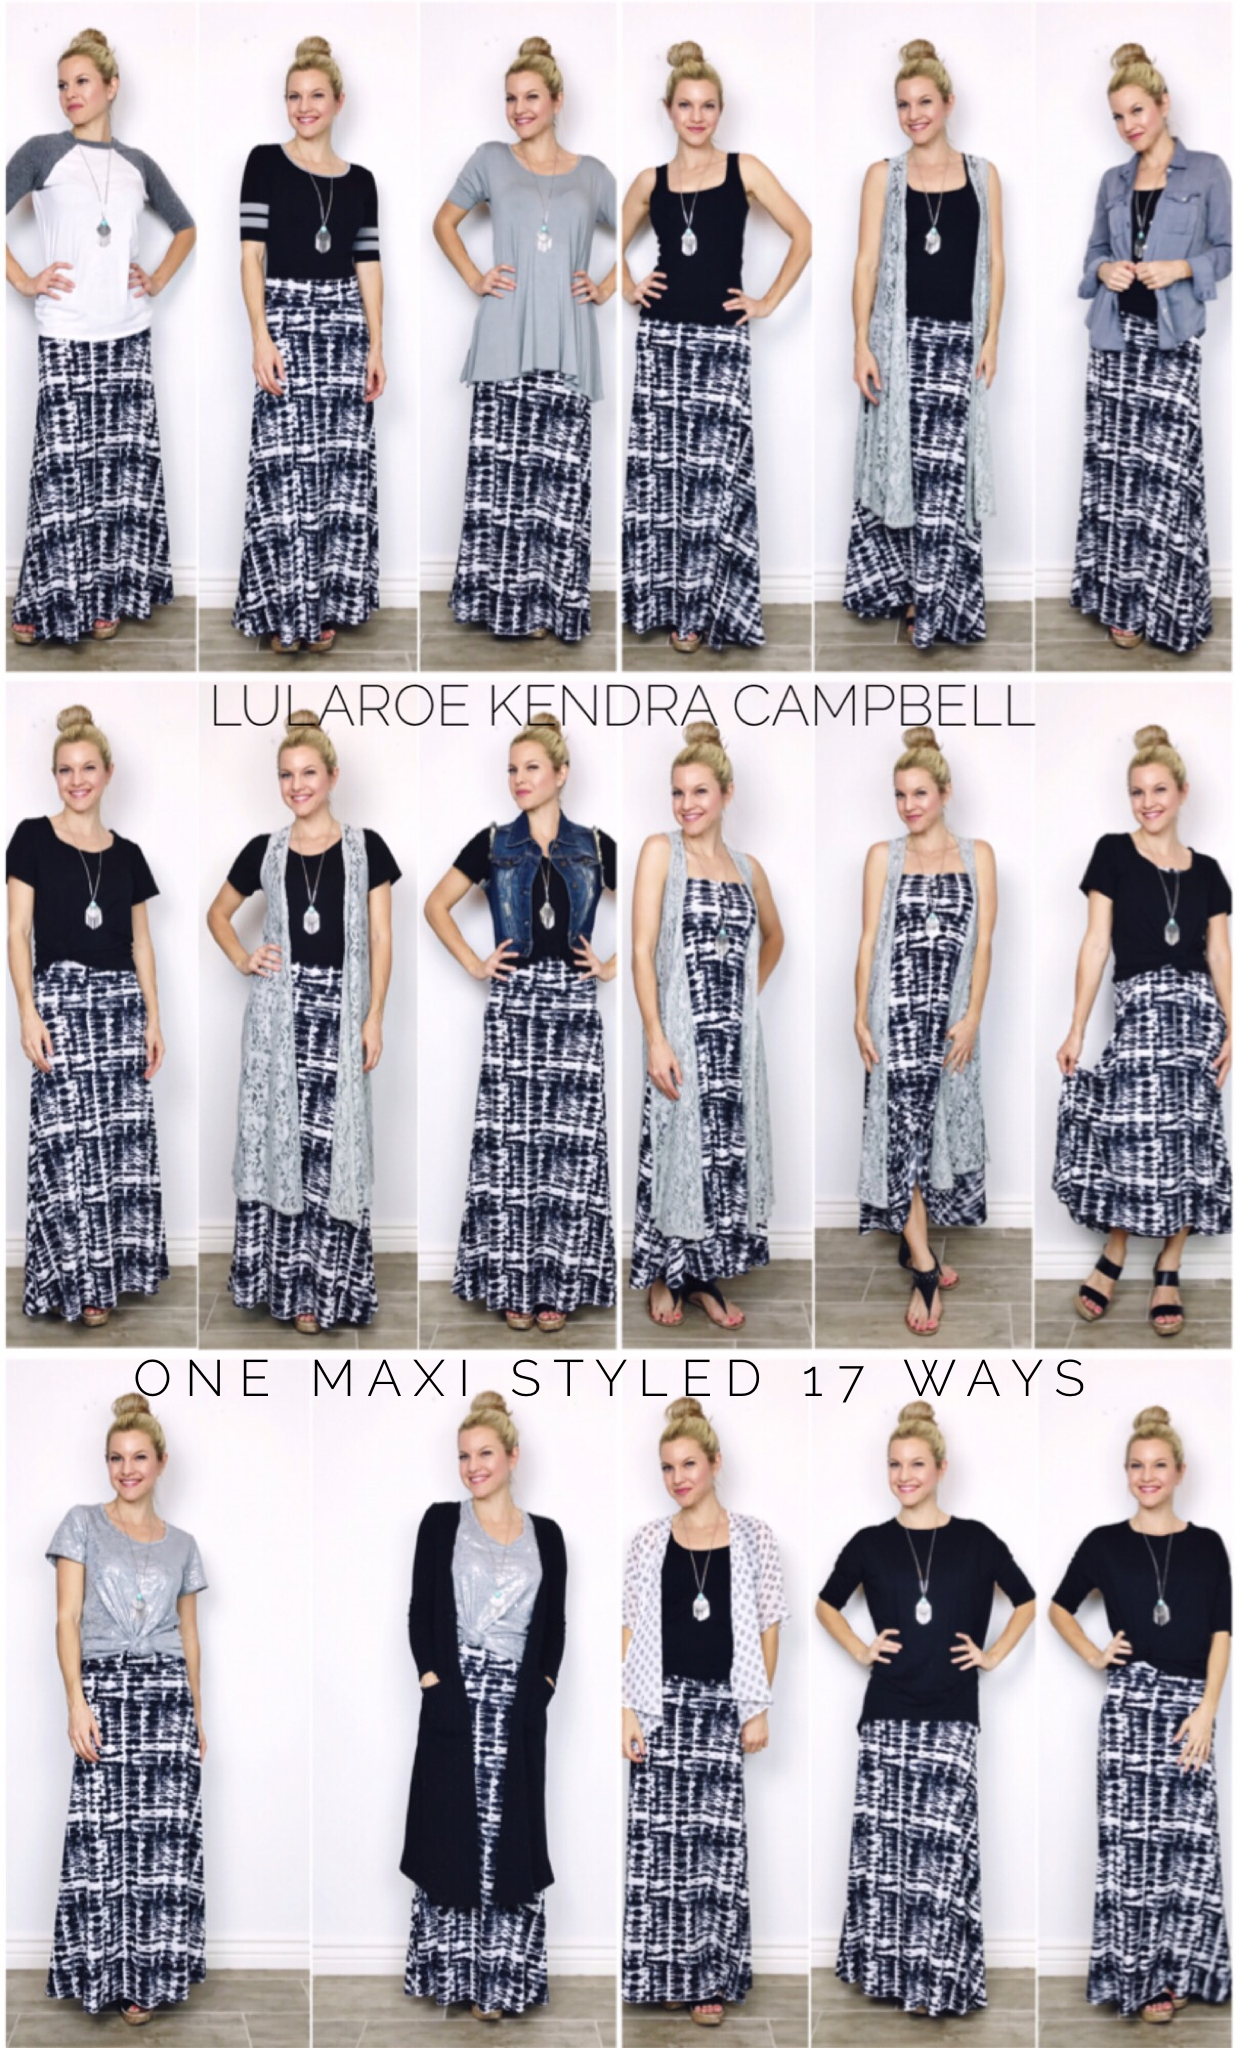 211cba9b0c Click the link to join my facebook group to see the individual photos with  descriptions. The maxi skirt is so versatile! More style inspiration and  LuLaRoe ...